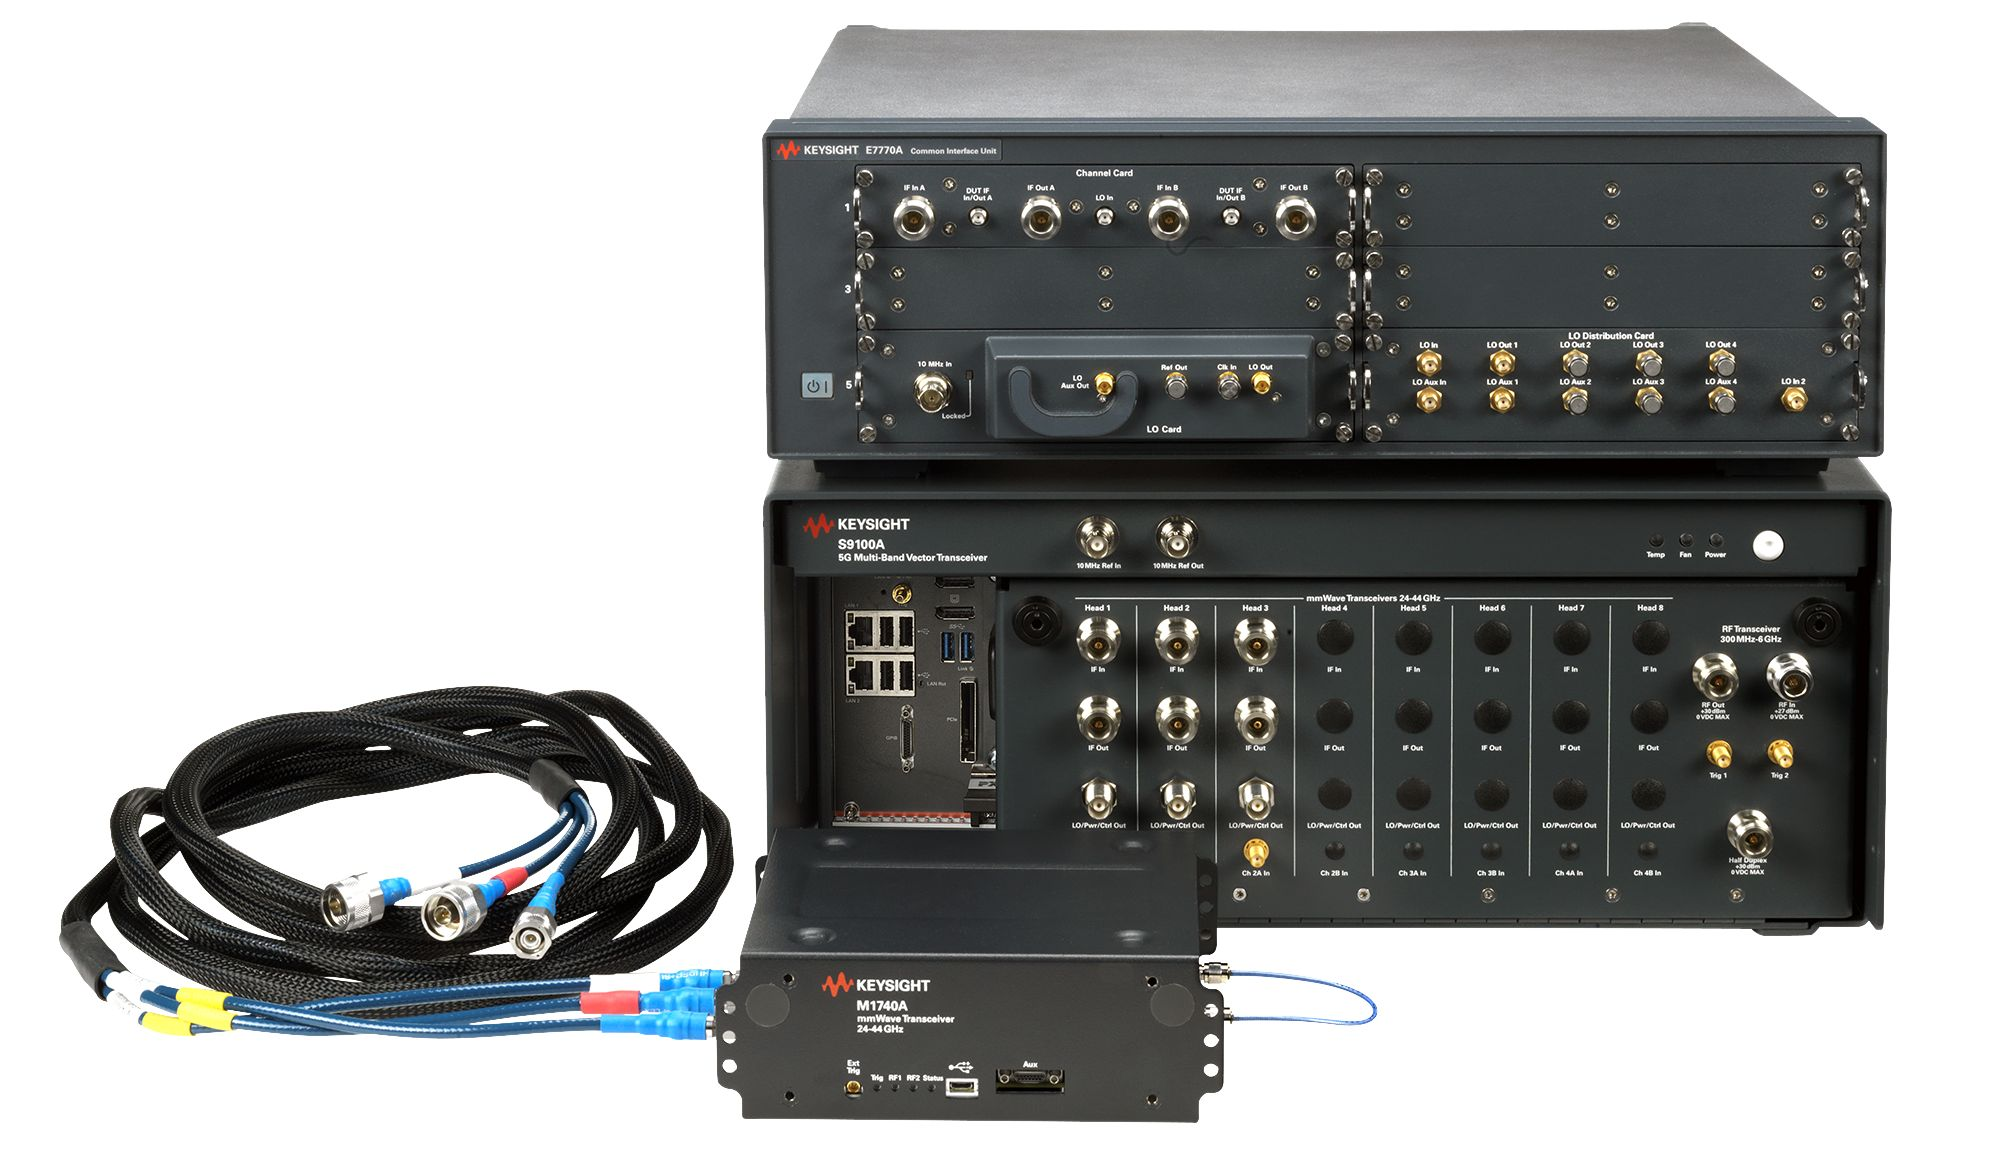 S9100A 5G Multi-Band Vector Transceiver